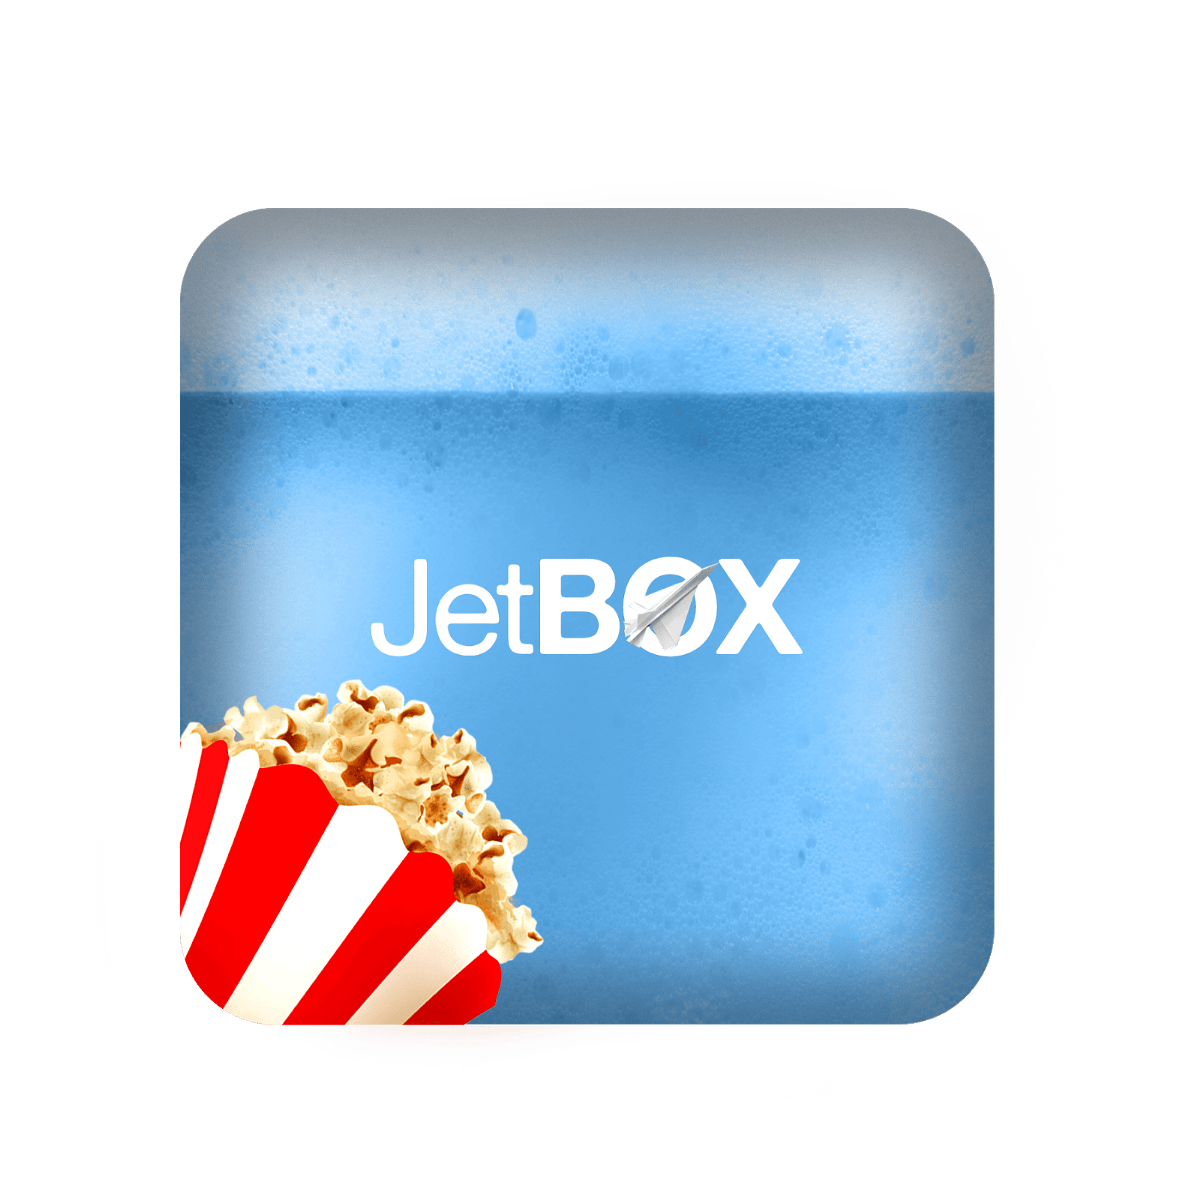 Jetbox APK for Your Android Devices (With images) App